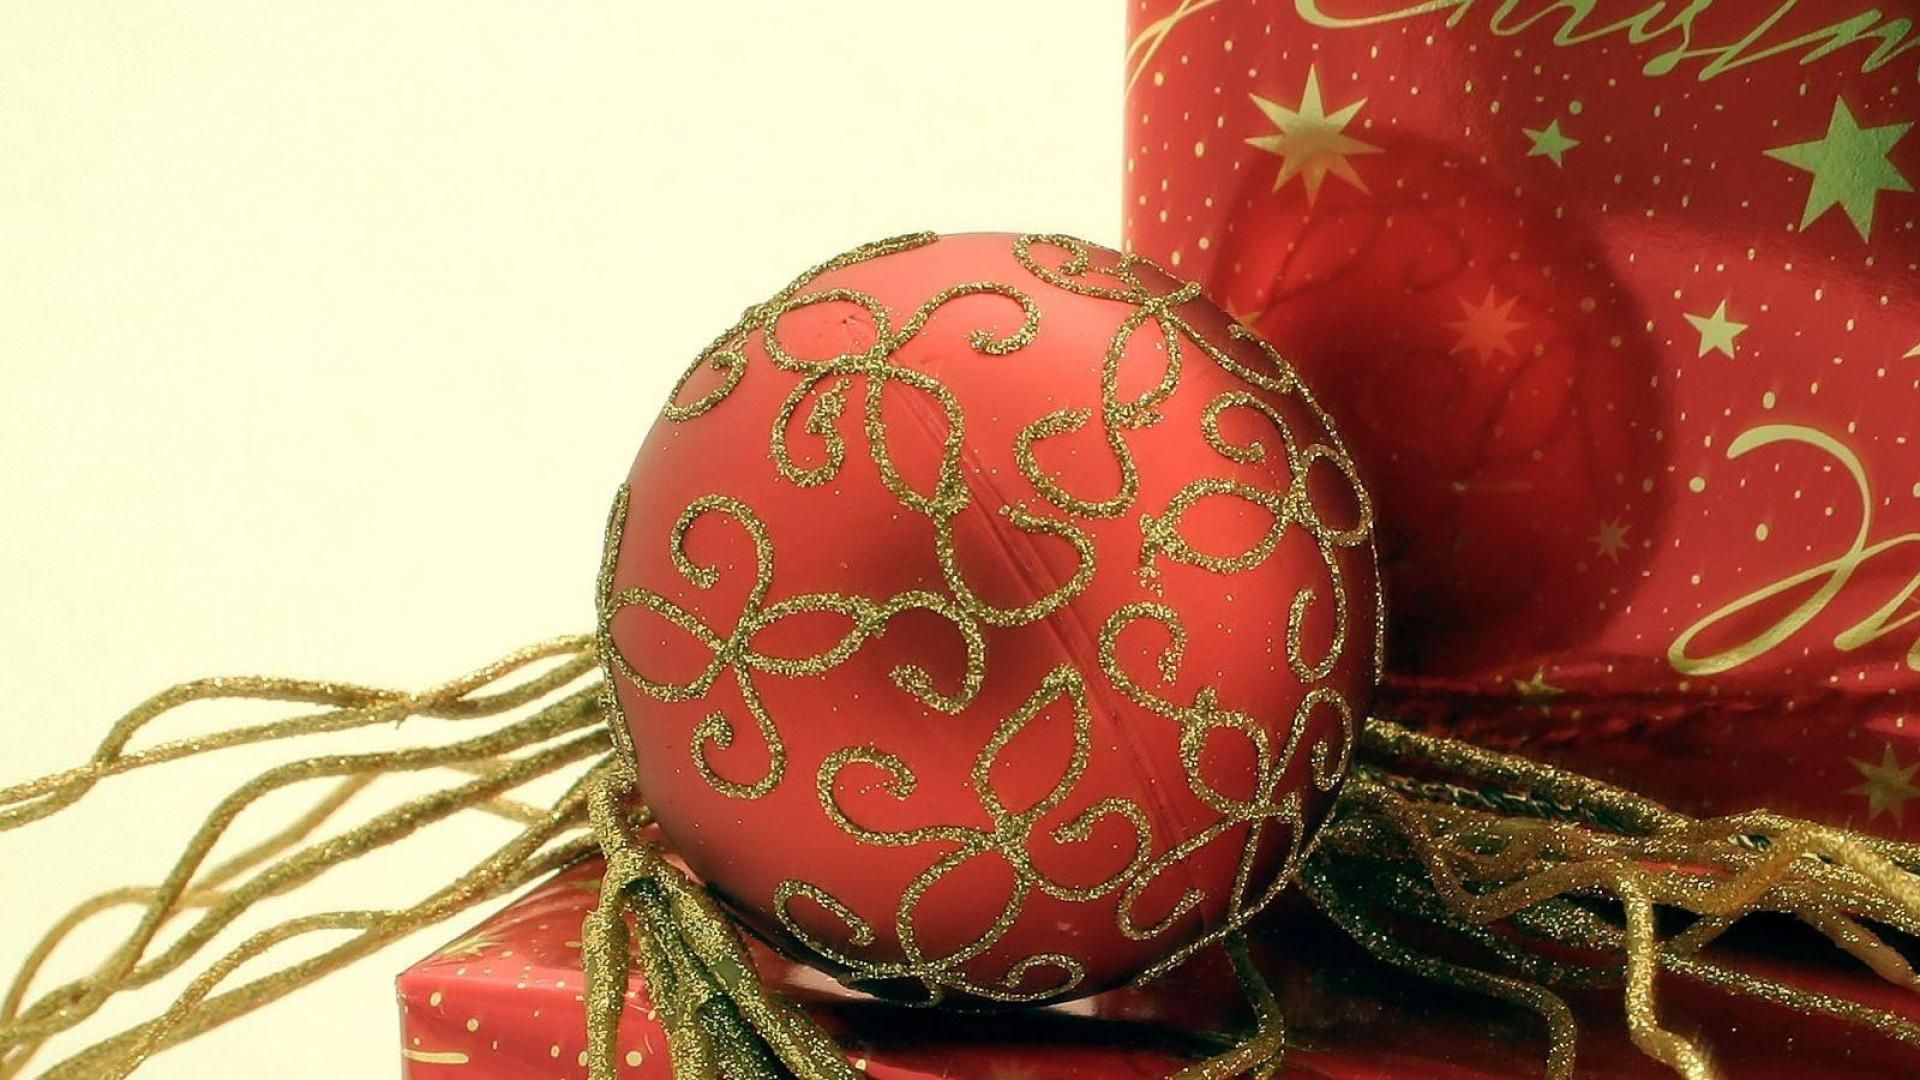 Download Wallpaper 1920x1080 Christmas Decorations Gift Glitter